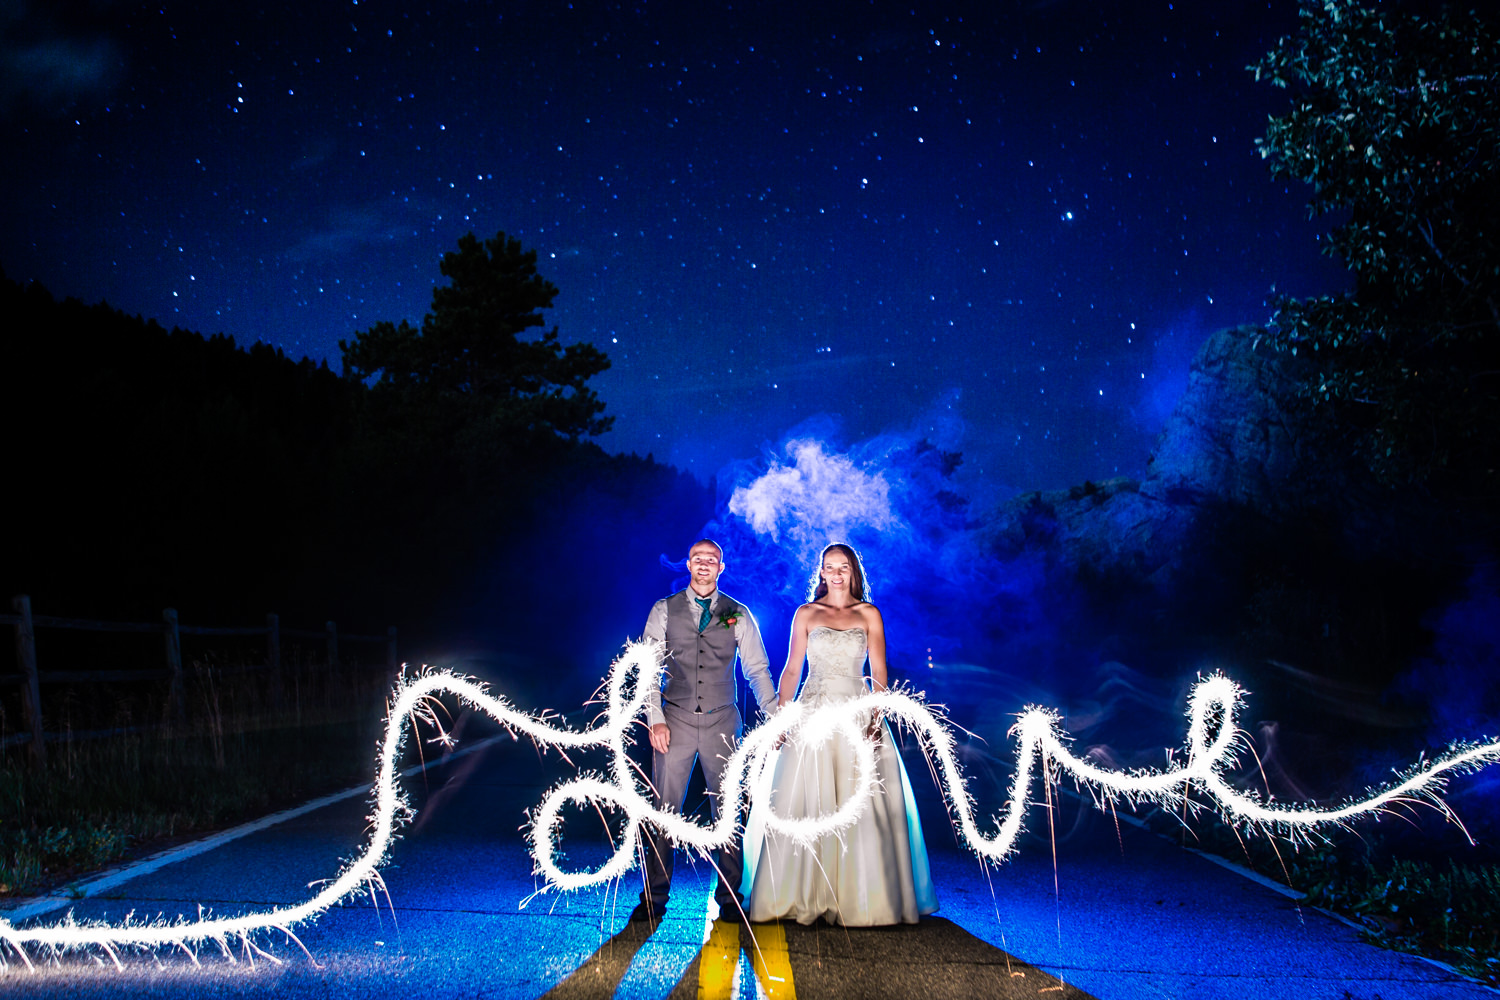 Colorado and Denver best wedding photographer, capturing vibrant bold, colorful, artistic, ourdoor wedding for fun couple who love photography.